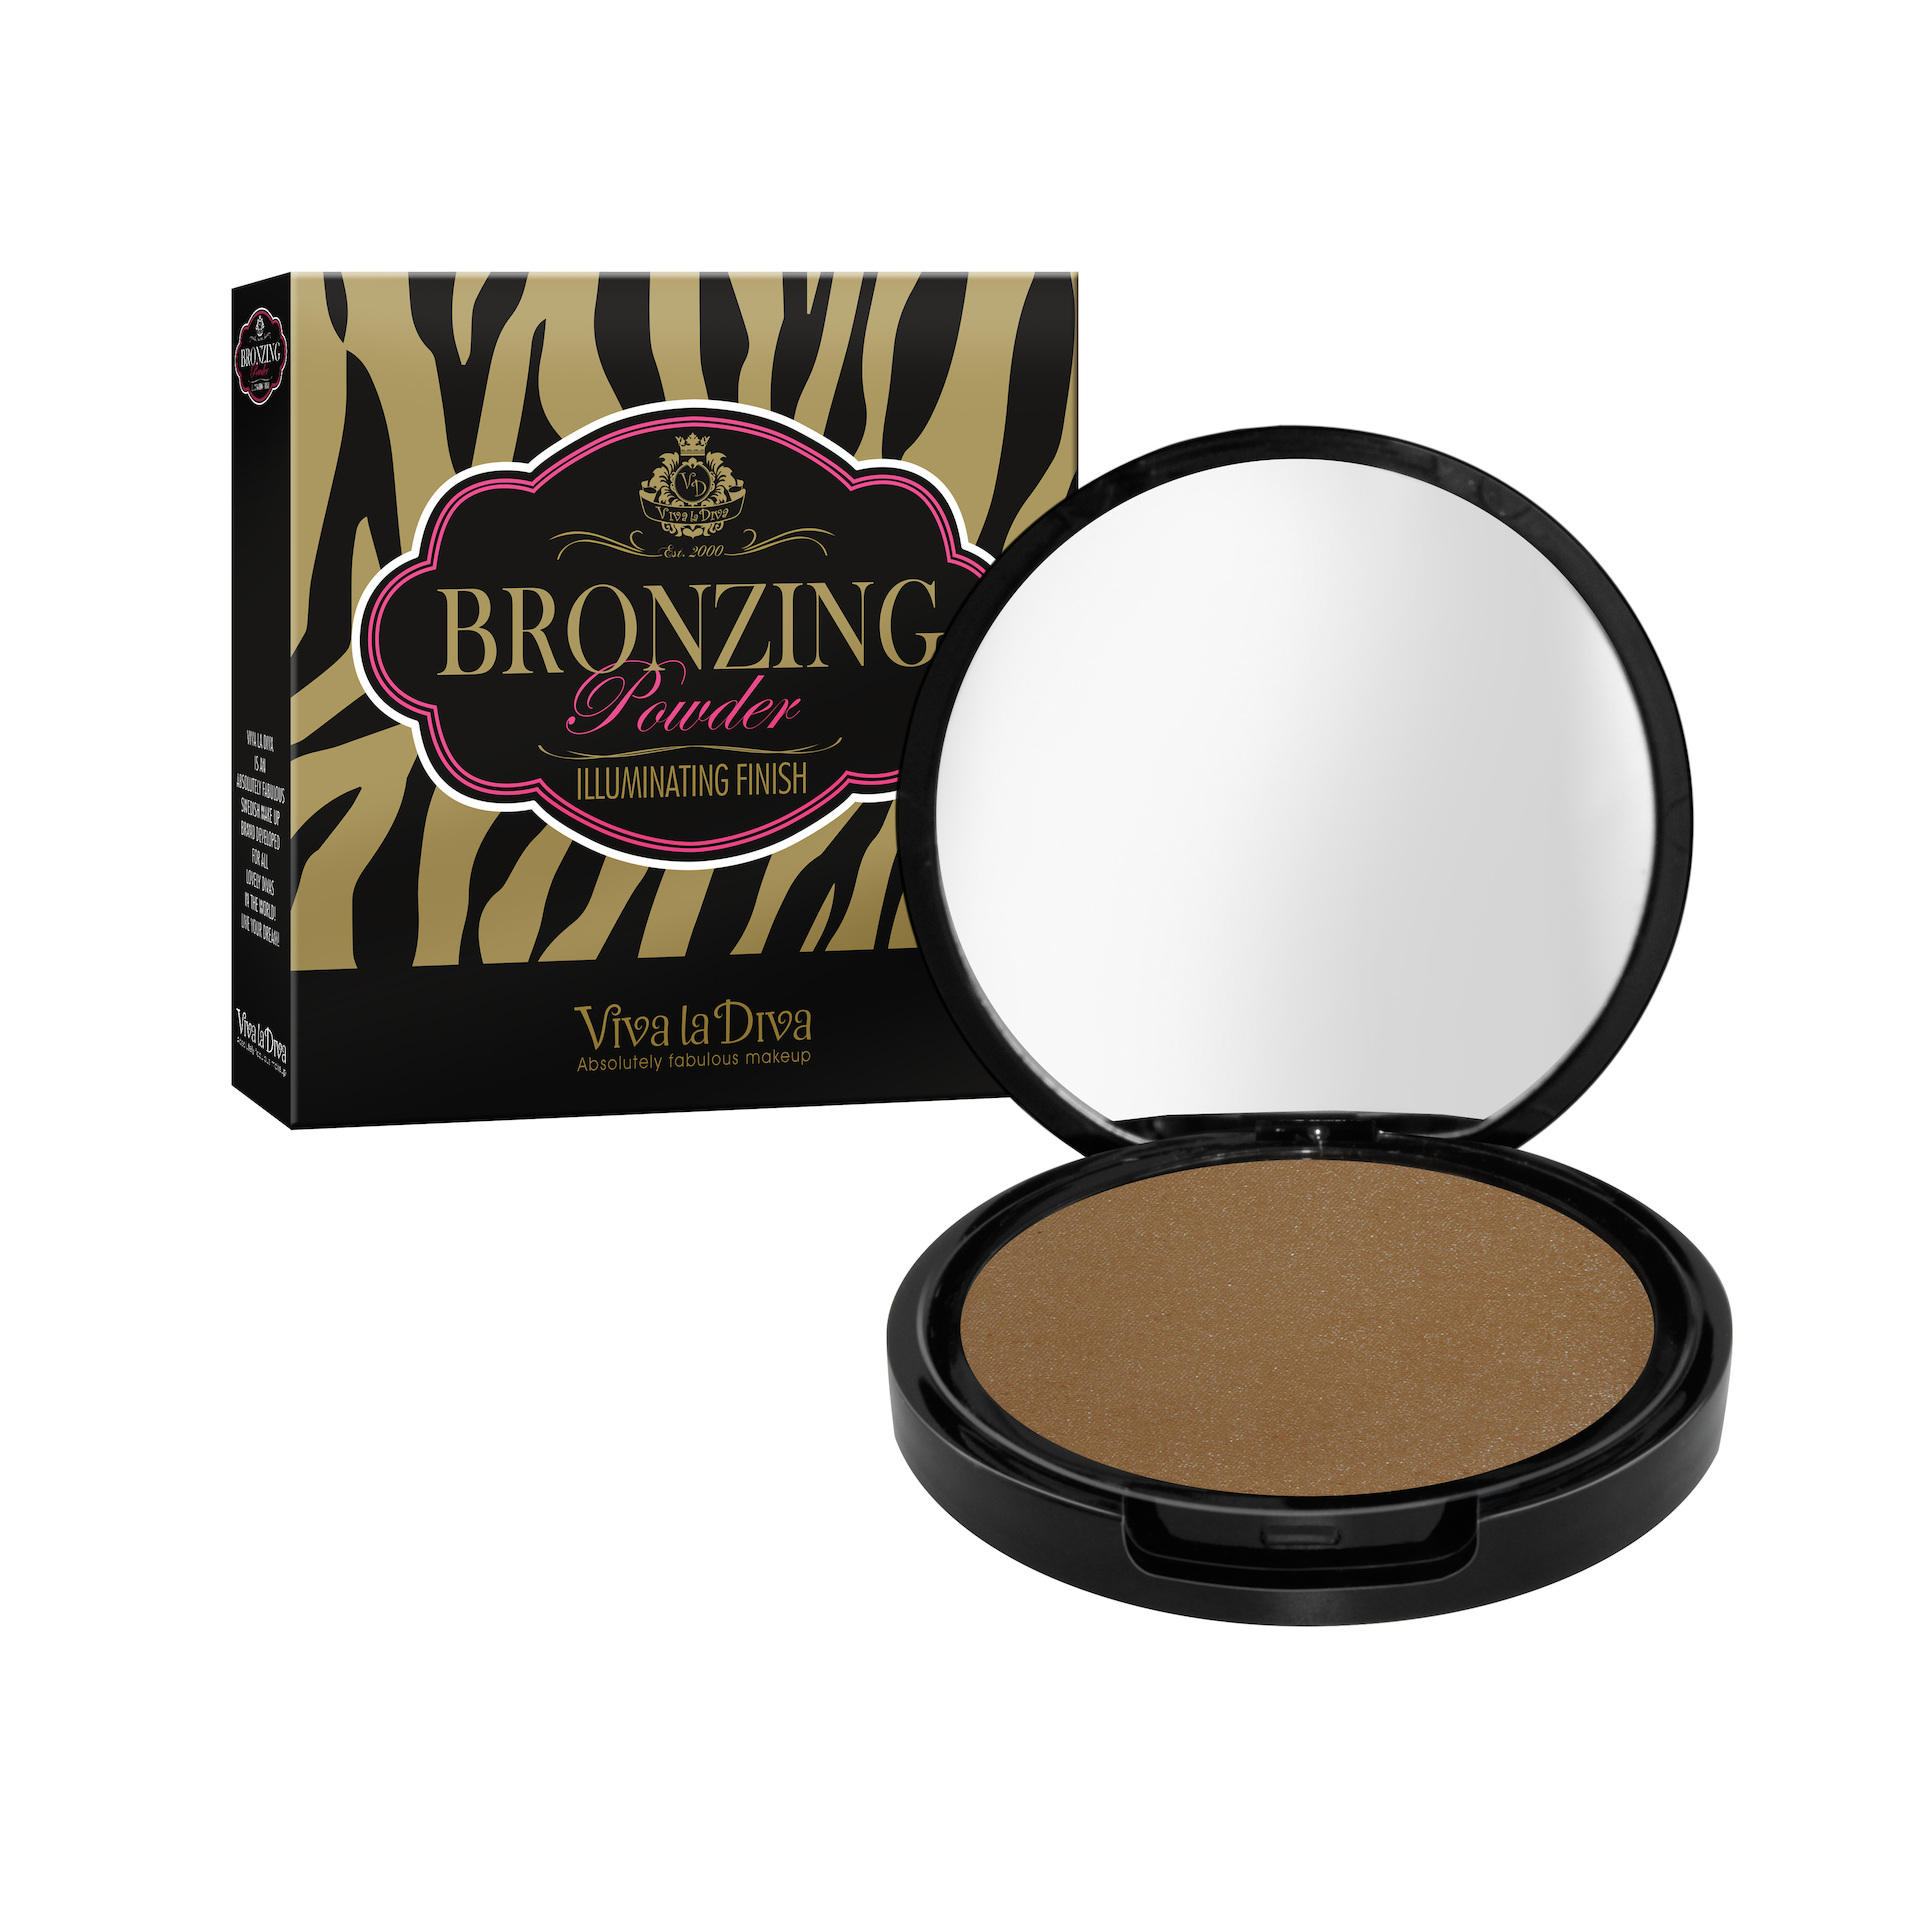 Illuminating Bronzing Powder 10 Illuminating